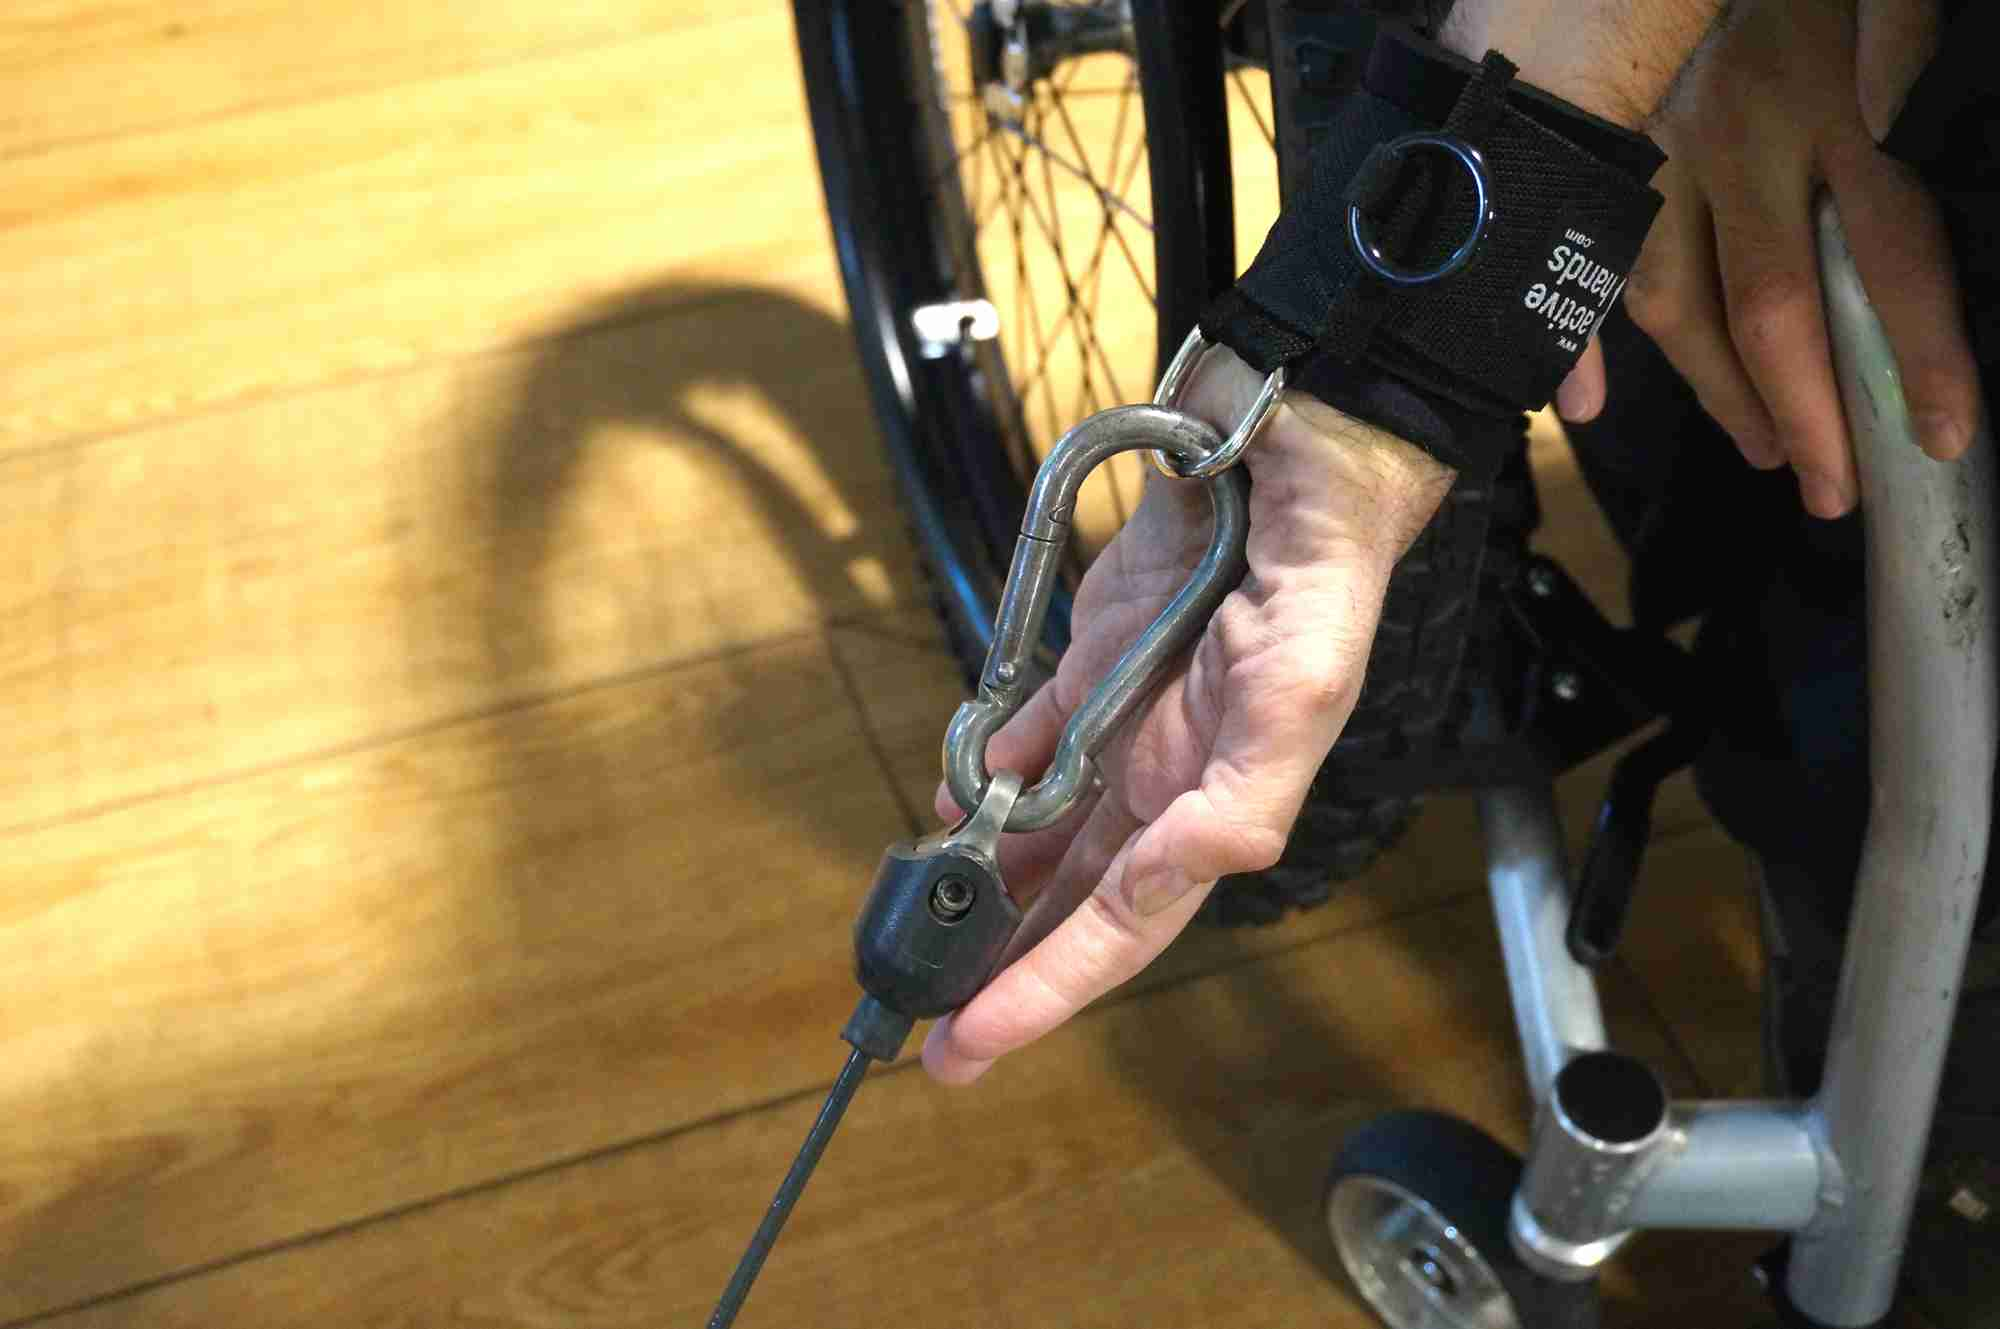 D-ring aid attached to karabiner in gym. Adaptive gym equipment. Suitable for reduced hand function: tetra, quad, cerebral palsy, SCI, spinal cord injury, limb difference, stroke and more.